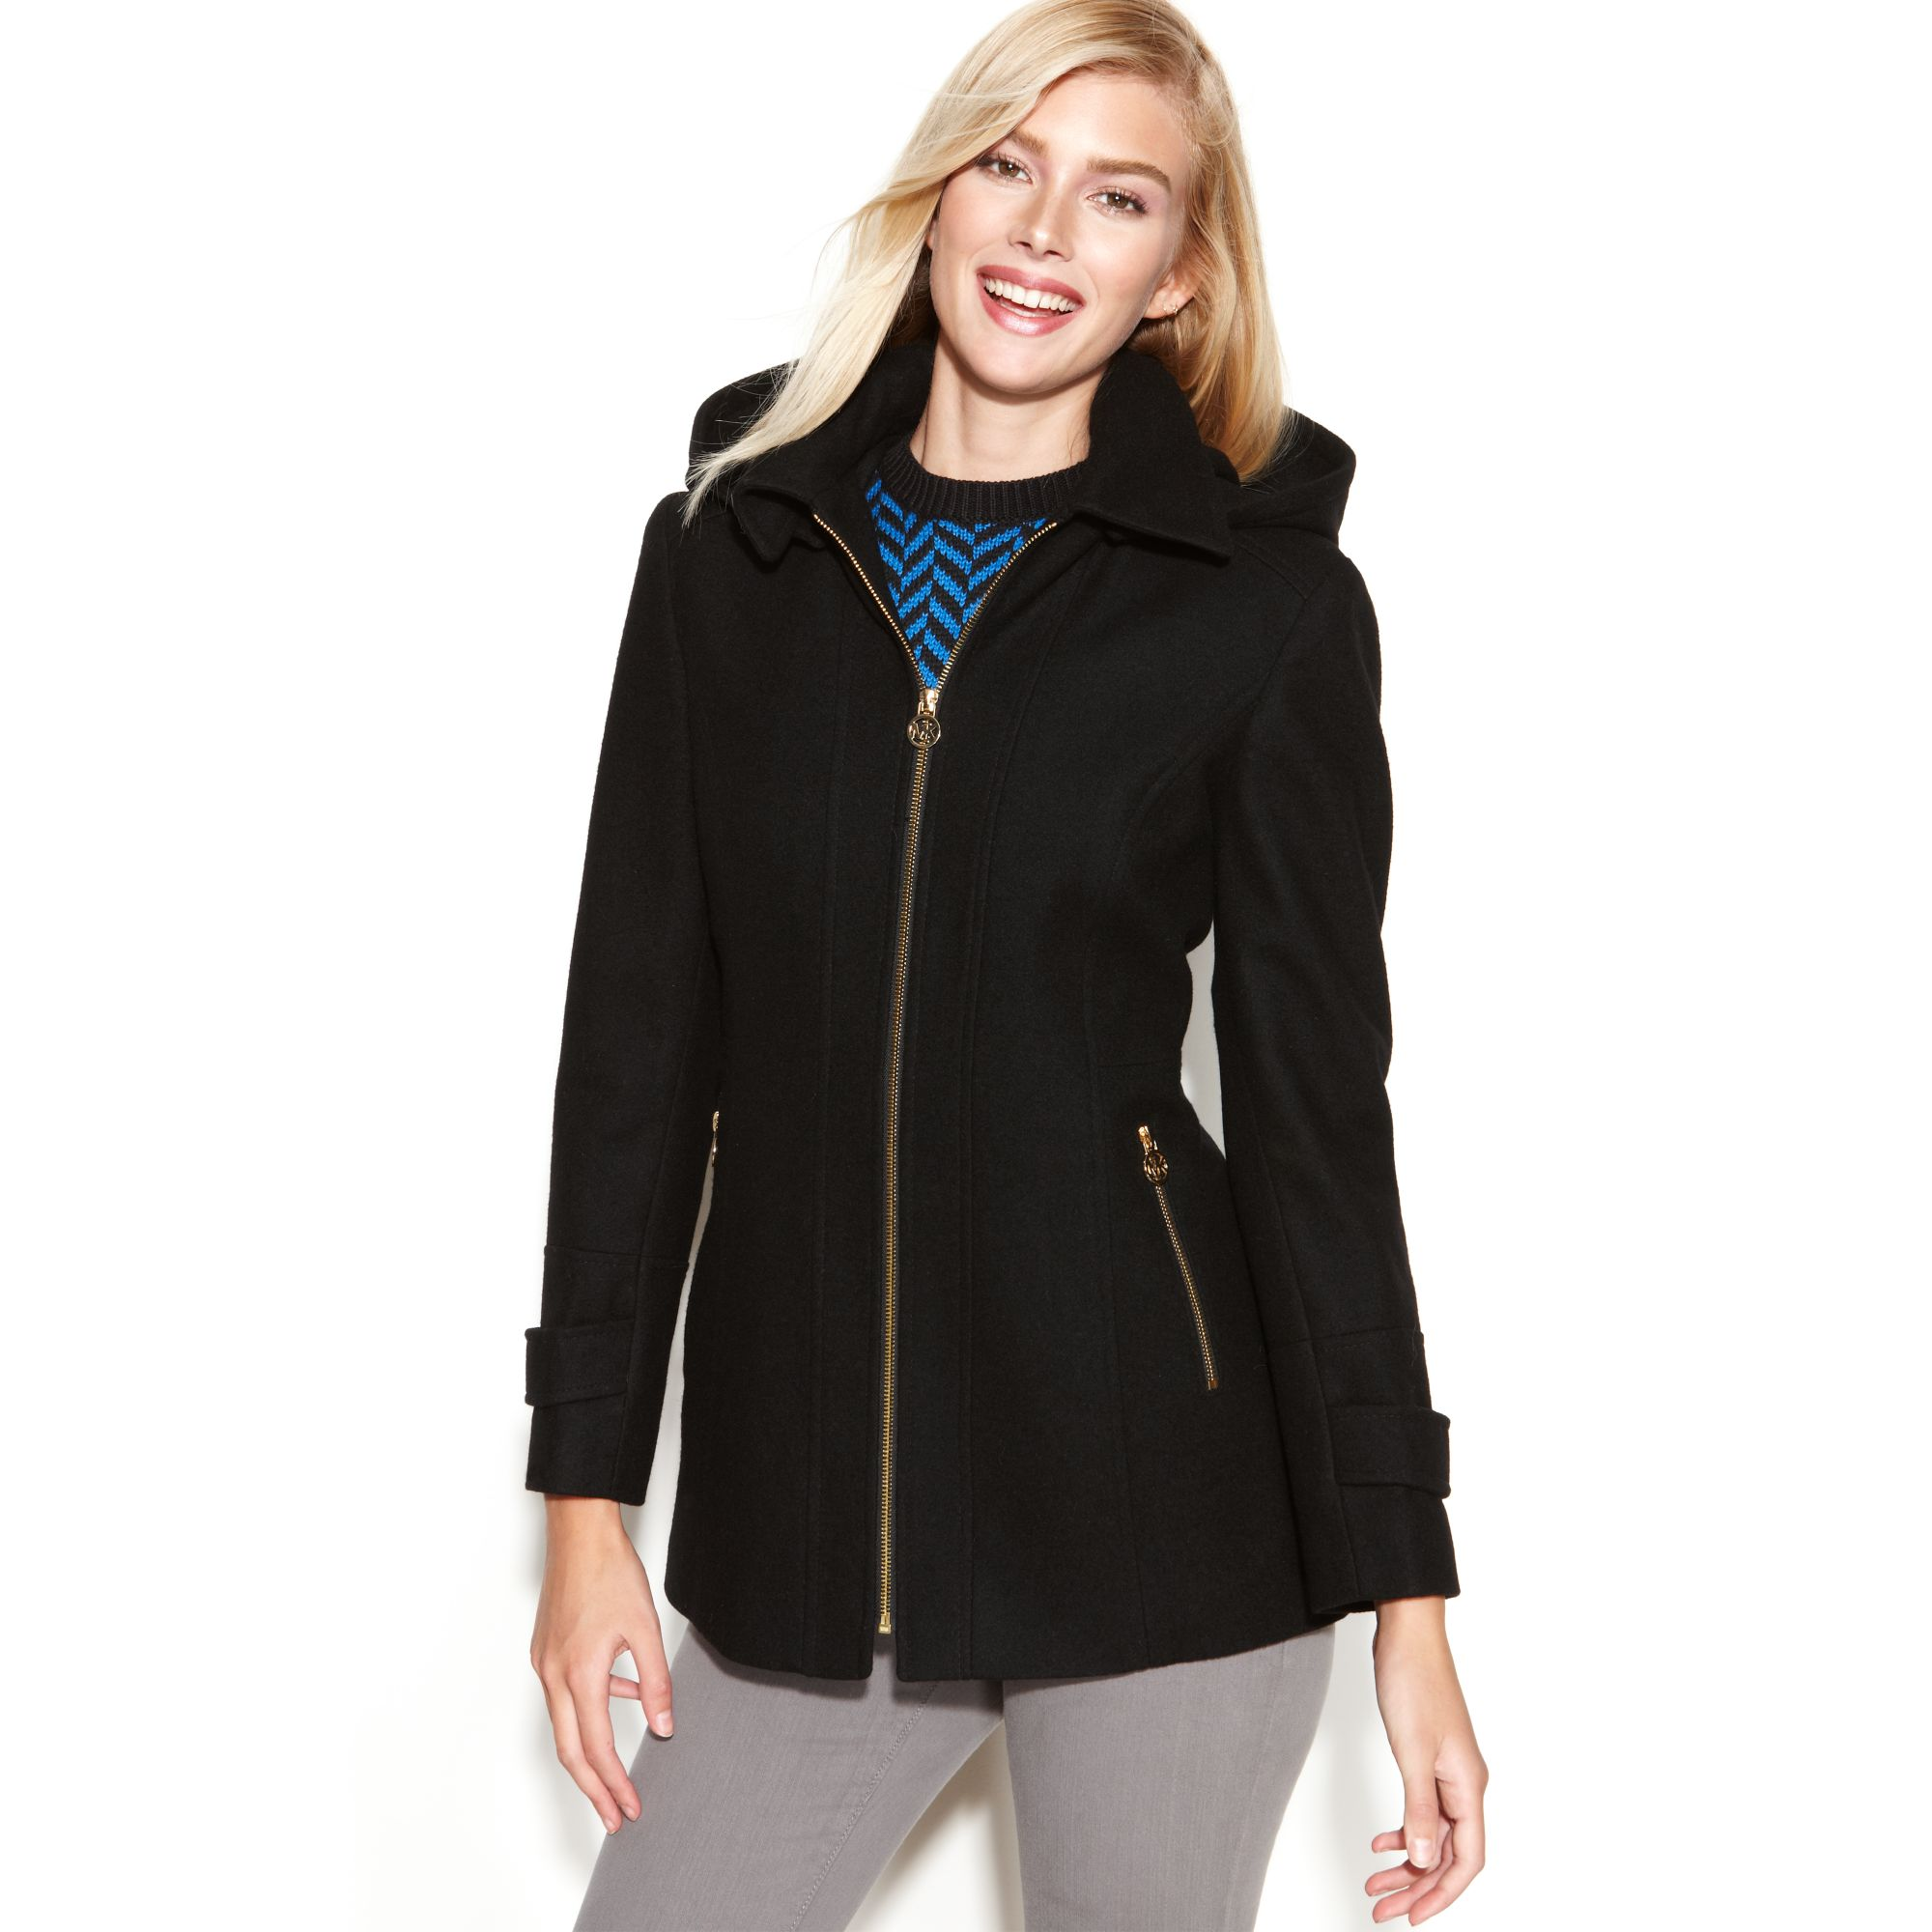 2bd7fb1fda661 Lyst - Michael Kors Hooded Zip-front Wool-blend in Black